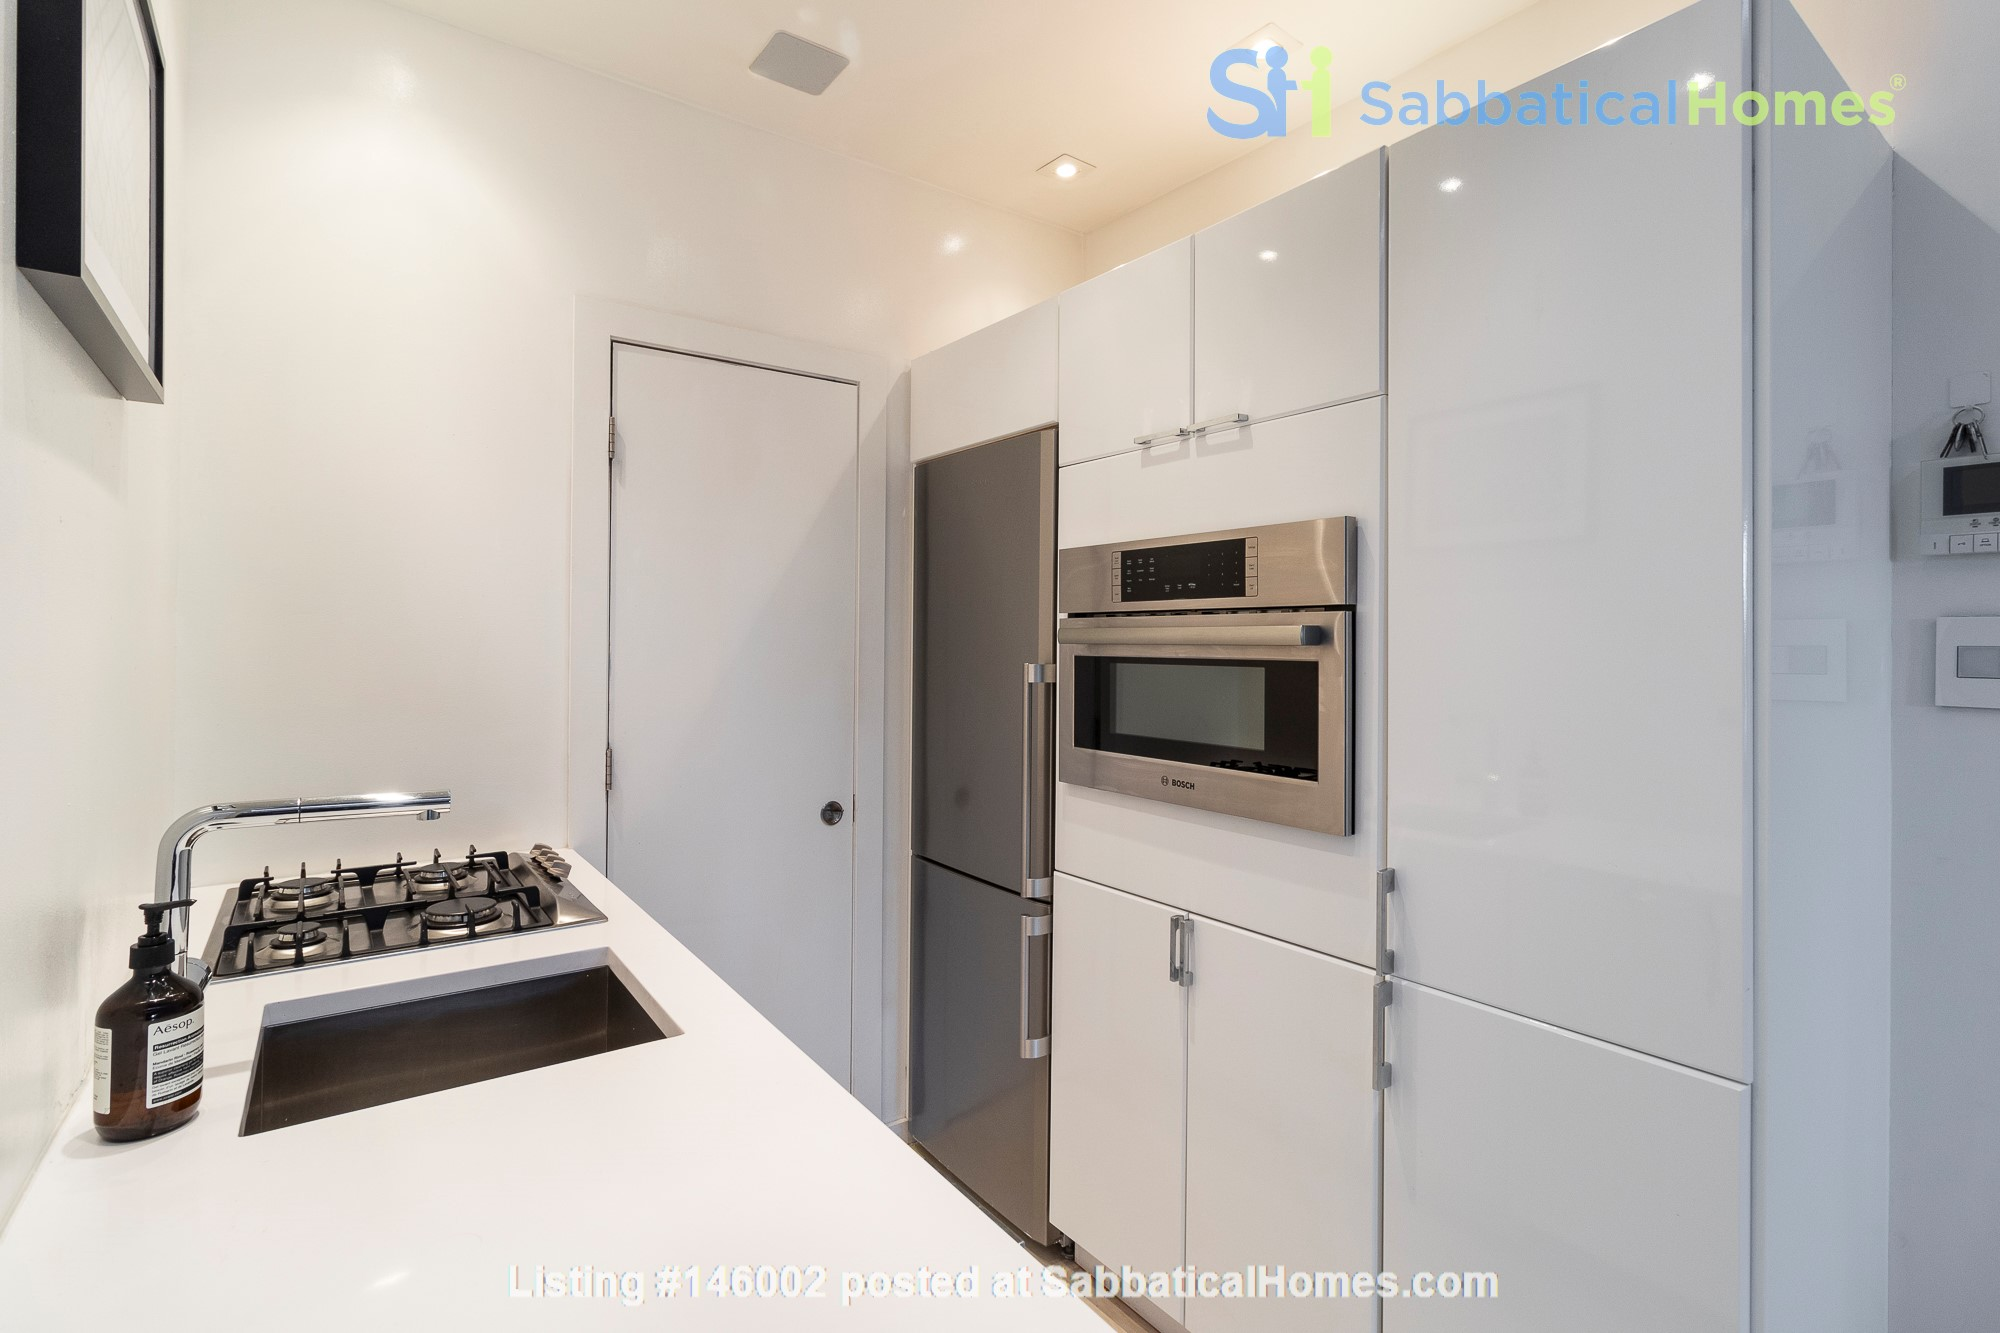 Newly renovated West Village unit in historic building with rooftop Home Rental in New York 3